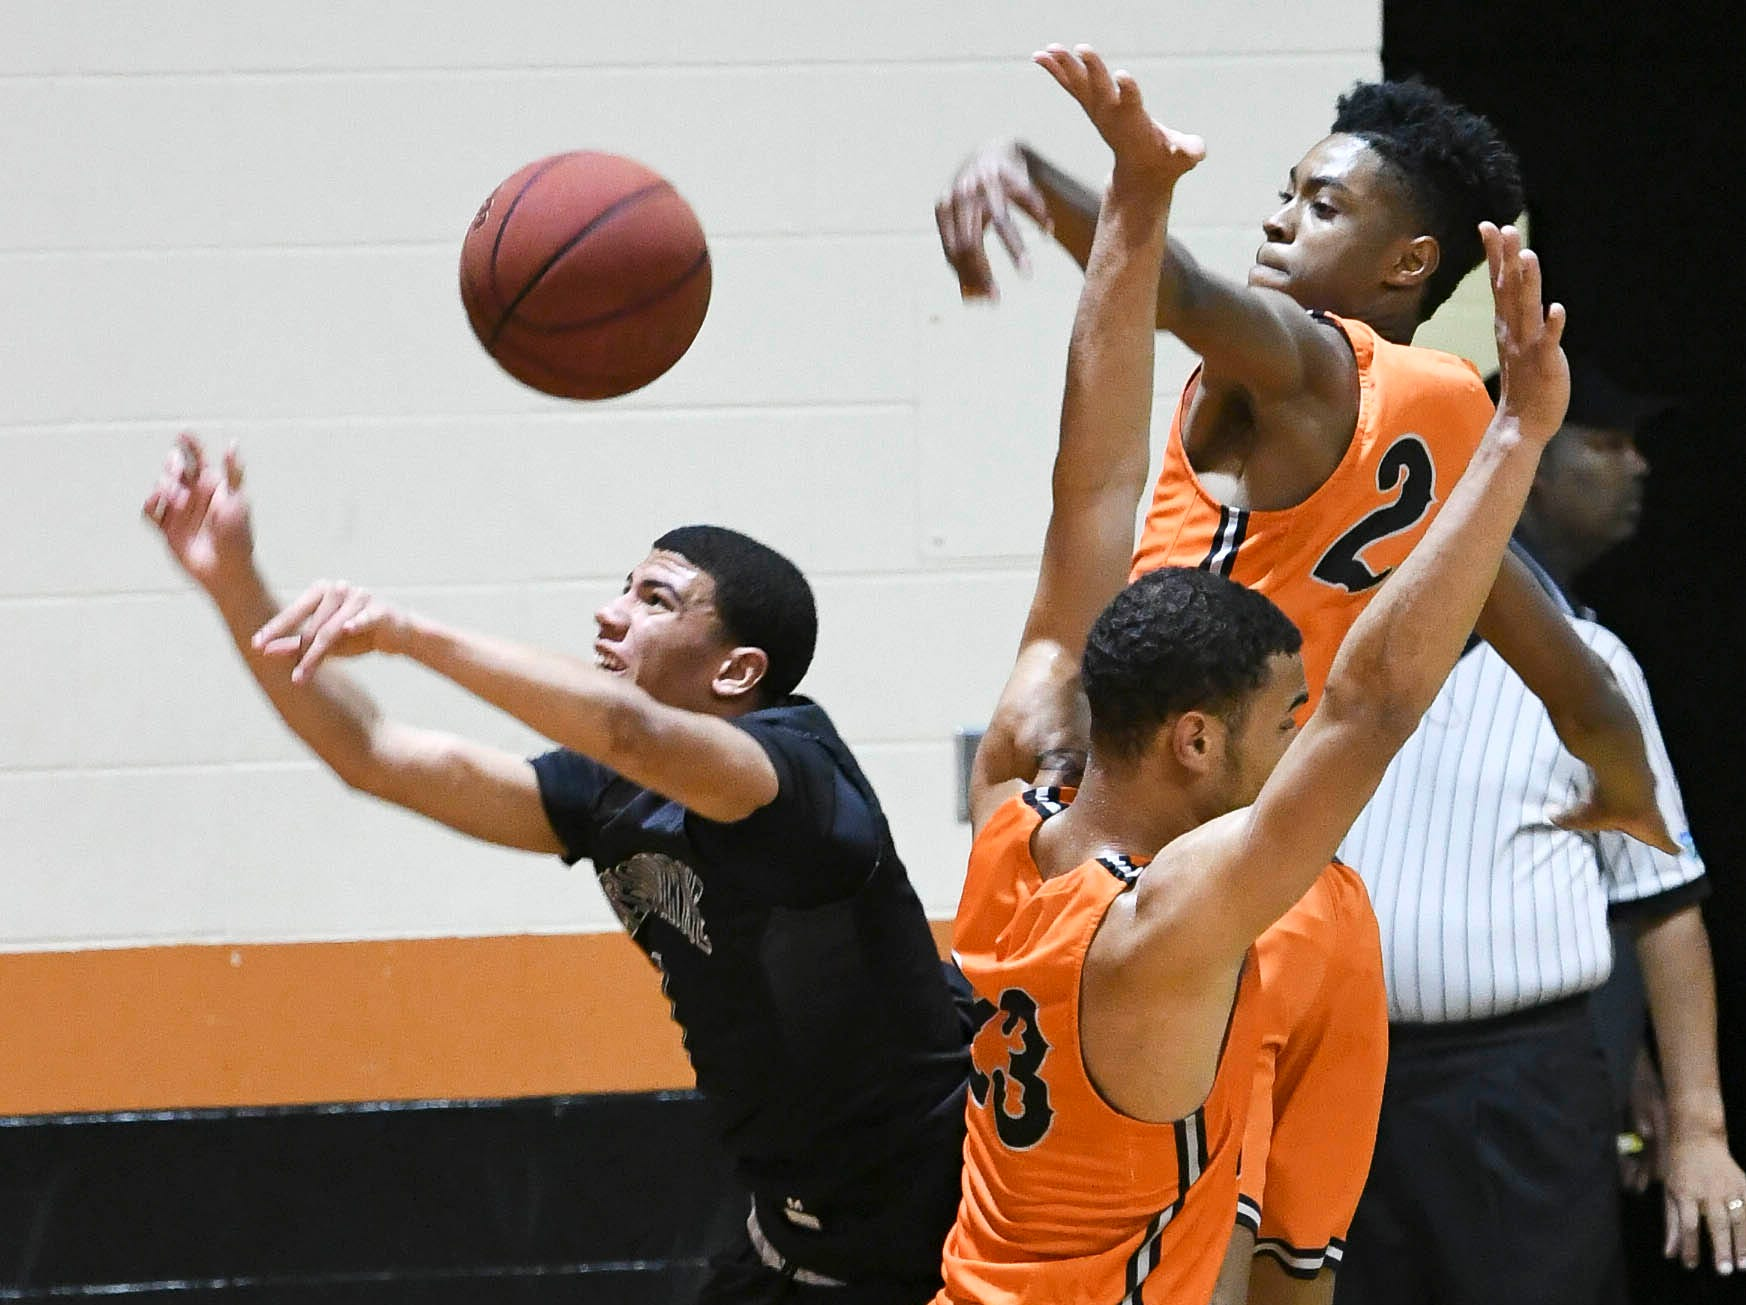 Tony Wright of Melbourne battles for a rebound with Kendal Parker and Joseph Cartwright of Cocoa during Thursday's game.